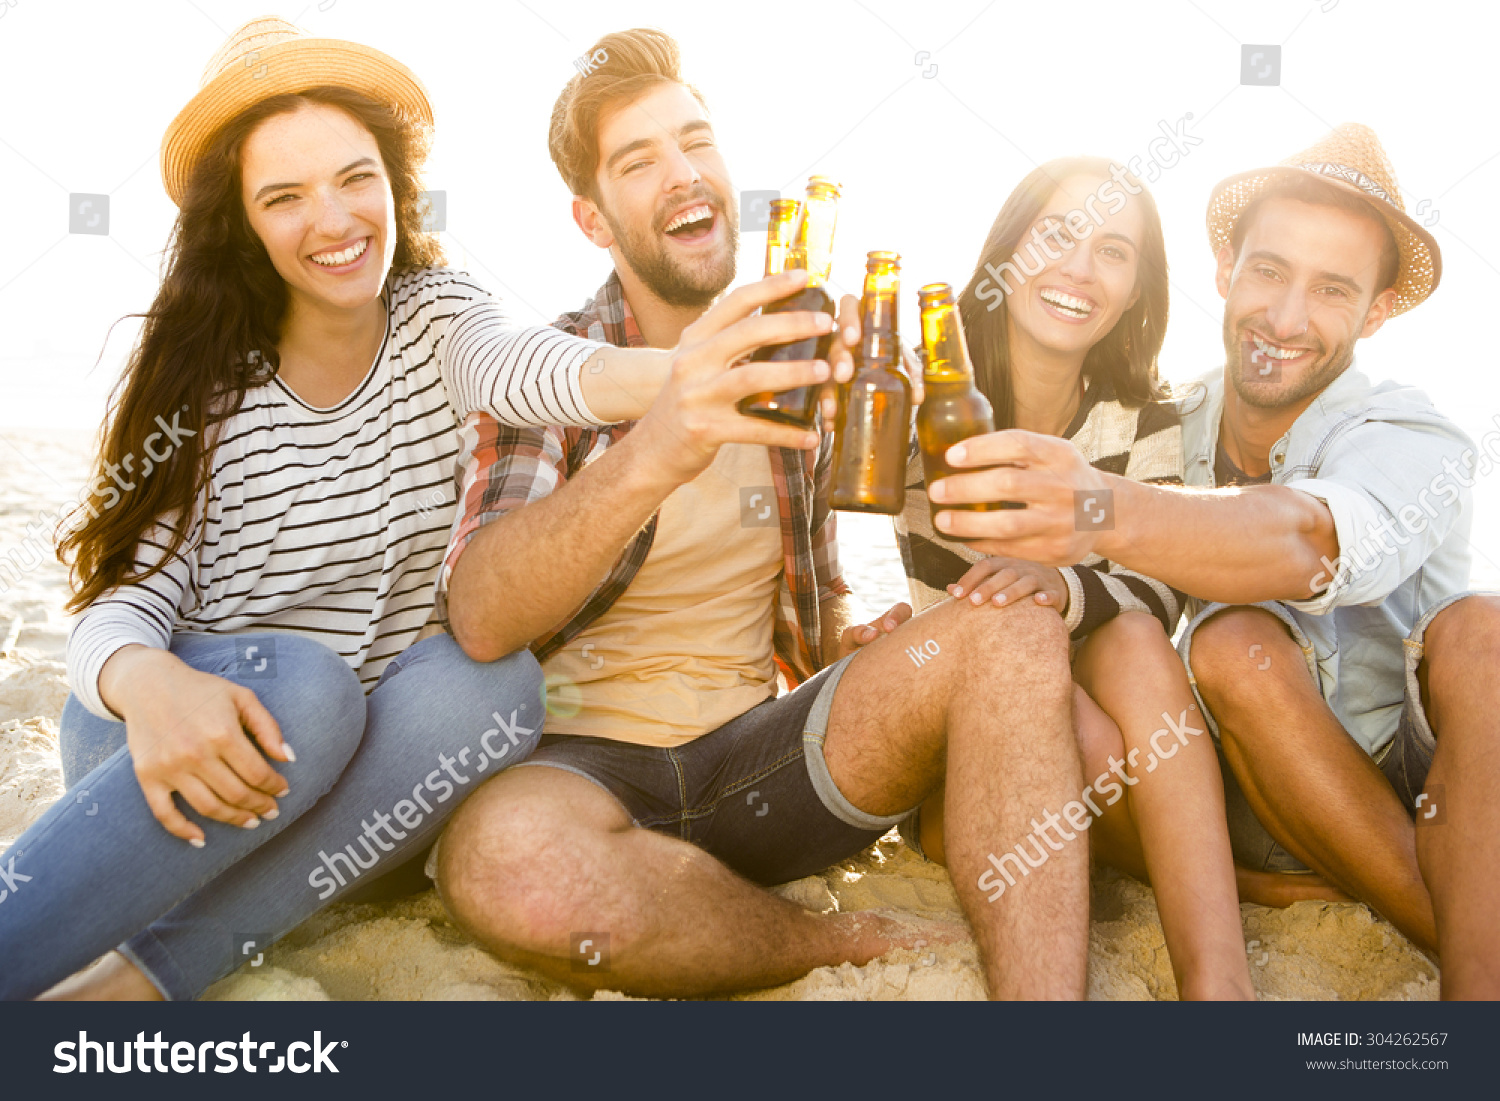 Friends having fun together at the beach and drinking a cold beer